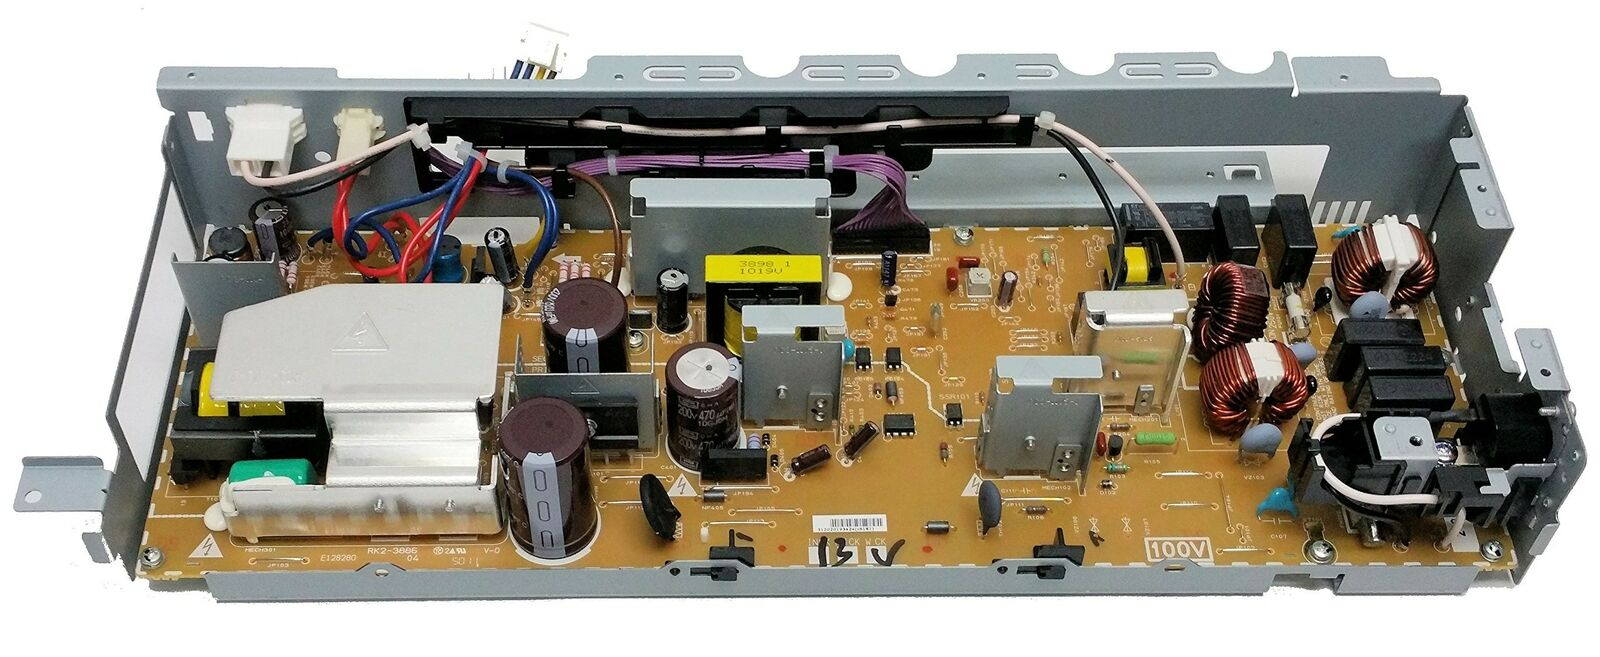 LVPS RM1-8091 HP Color LaserJet M551 Low Voltage Power Supply Free Ground!!!